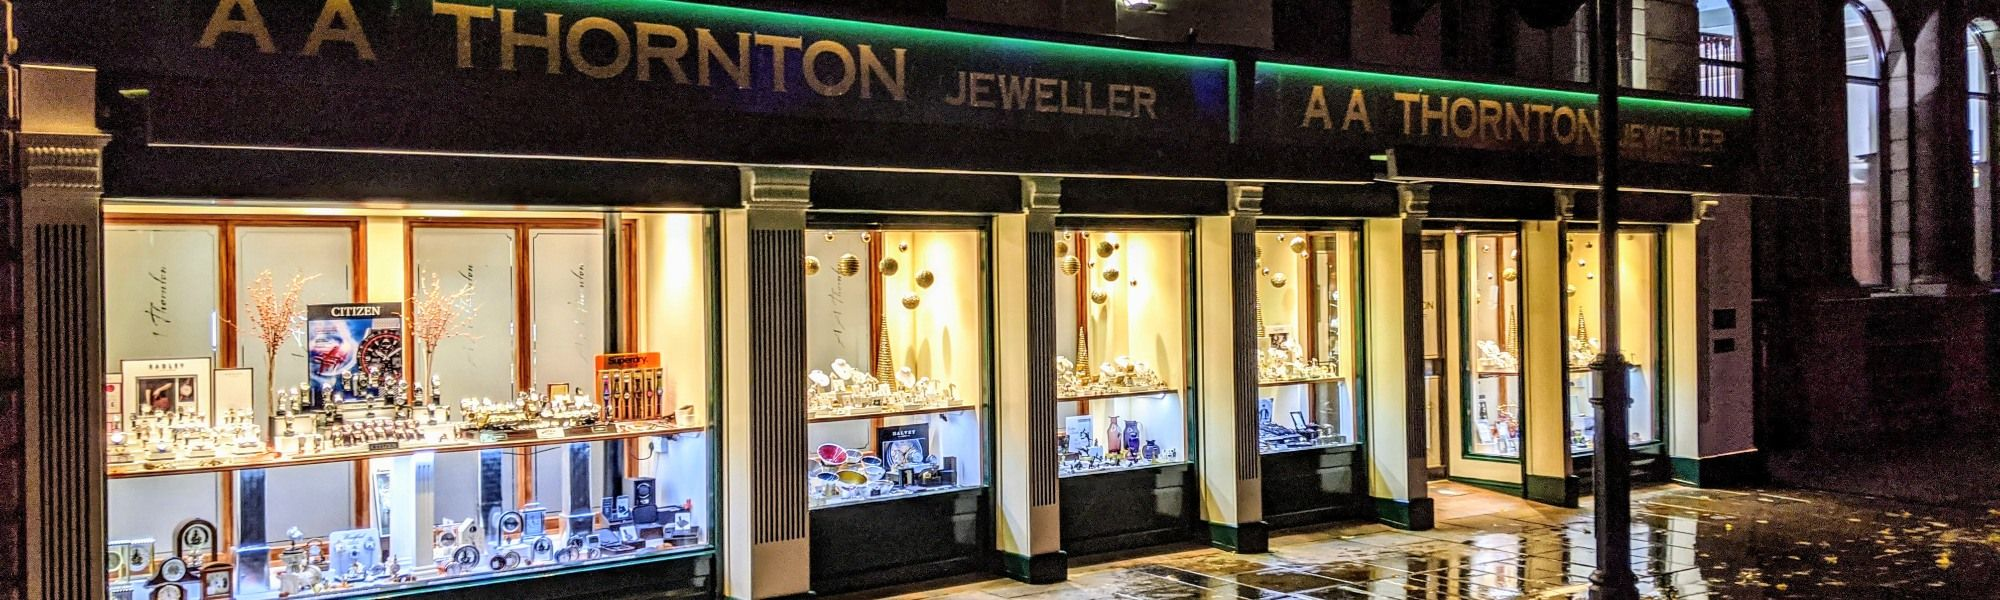 aa thornton jewellery shop window kettering